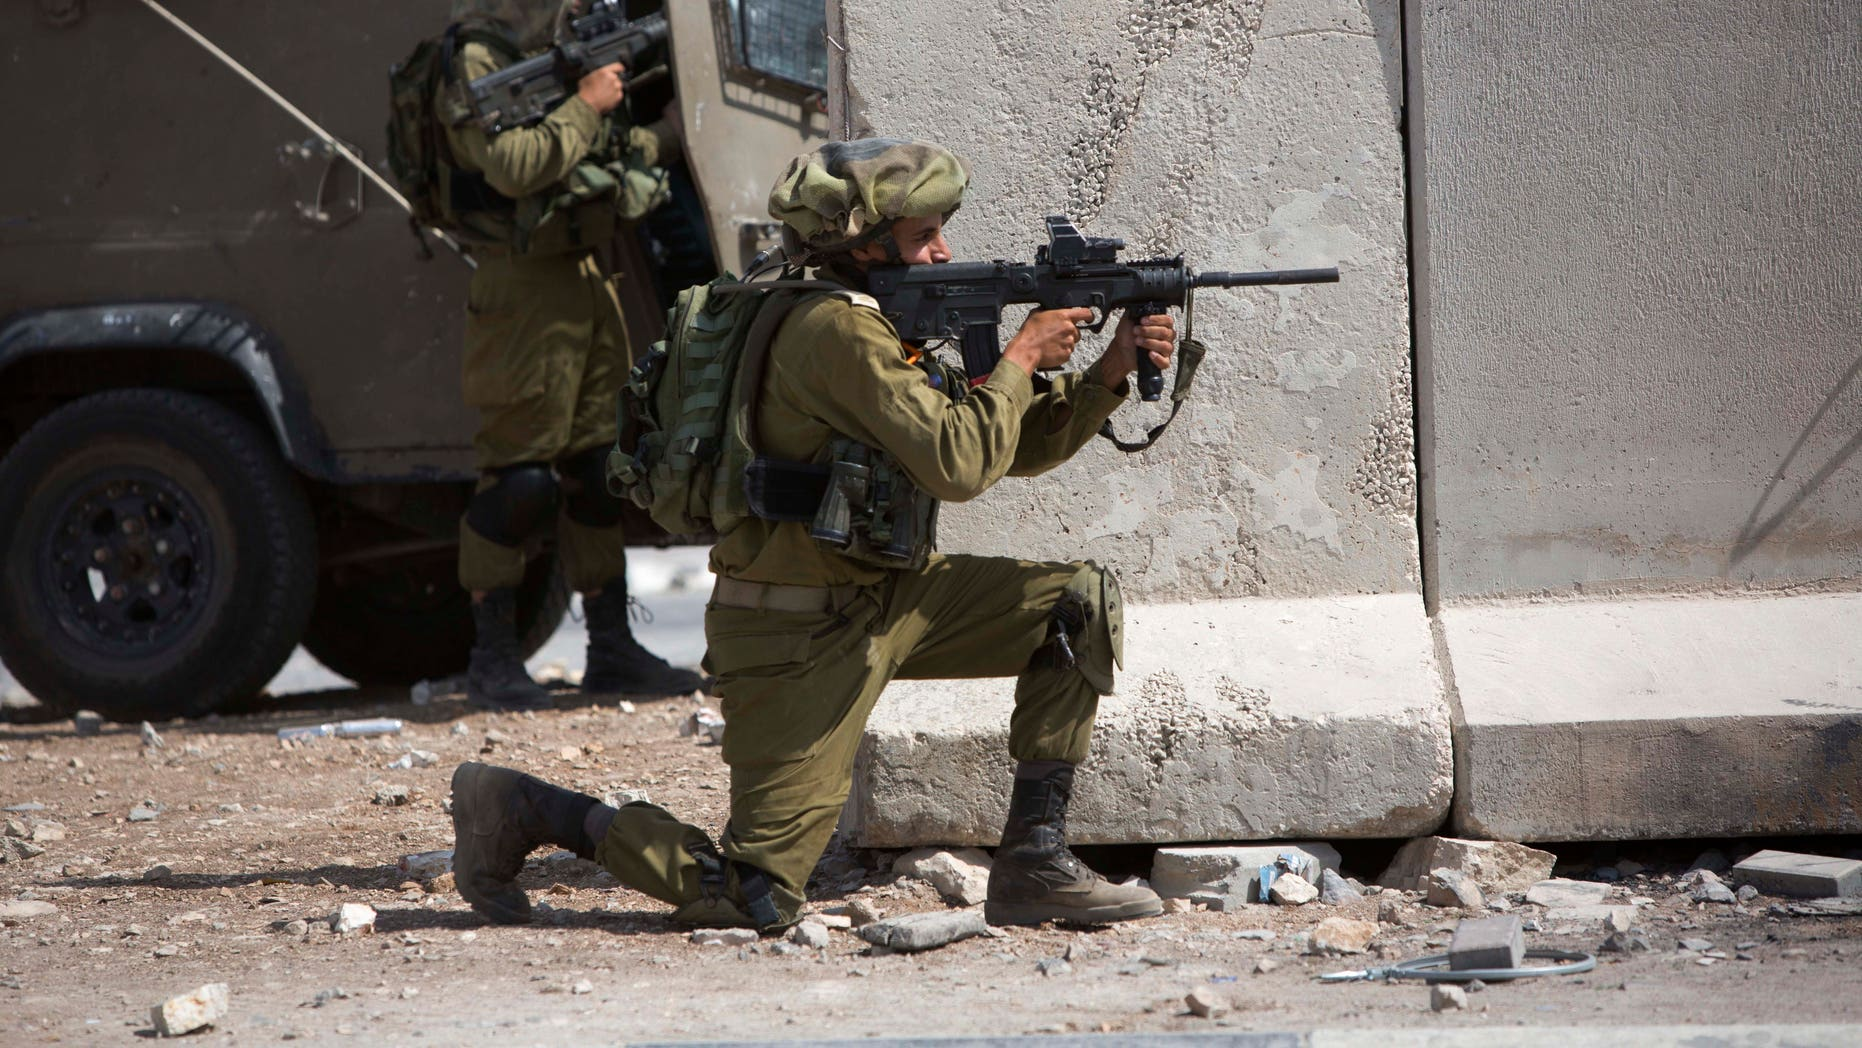 Sept. 15, 2015 - An Israeli soldier aims his weapon towards Palestinians following a demonstration at the Al-Aqsa mosque compound in Jerusalem's Old City, during clashes in the West Bank town of al-Ram. Violence between Palestinian protesters and Israeli security forces spread beyond the walls of Jerusalem's old city Friday, with at least  8 Palestinians shot in clashes in the West Bank and Israeli policemen injured by firebombs.